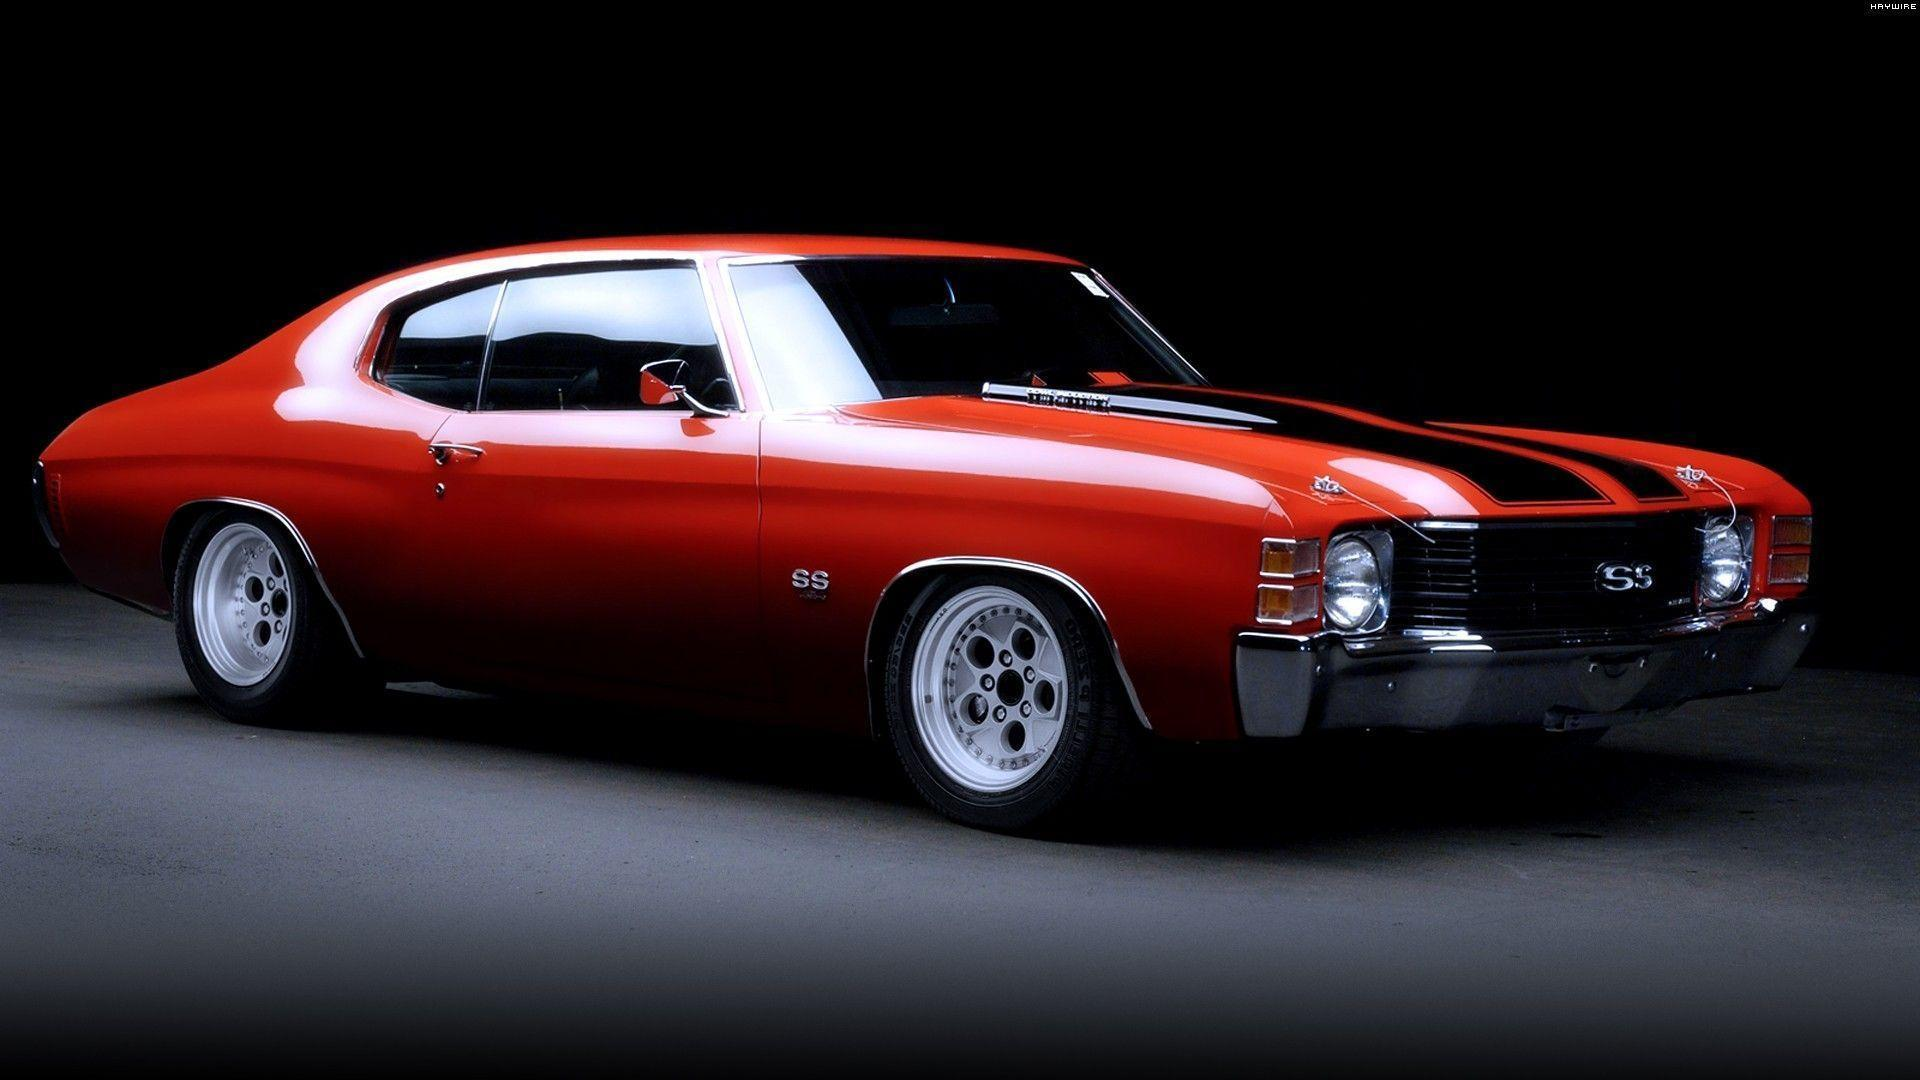 Chevy Muscle Cars Cool HD Wallpapers Picture on ScreenCrot.